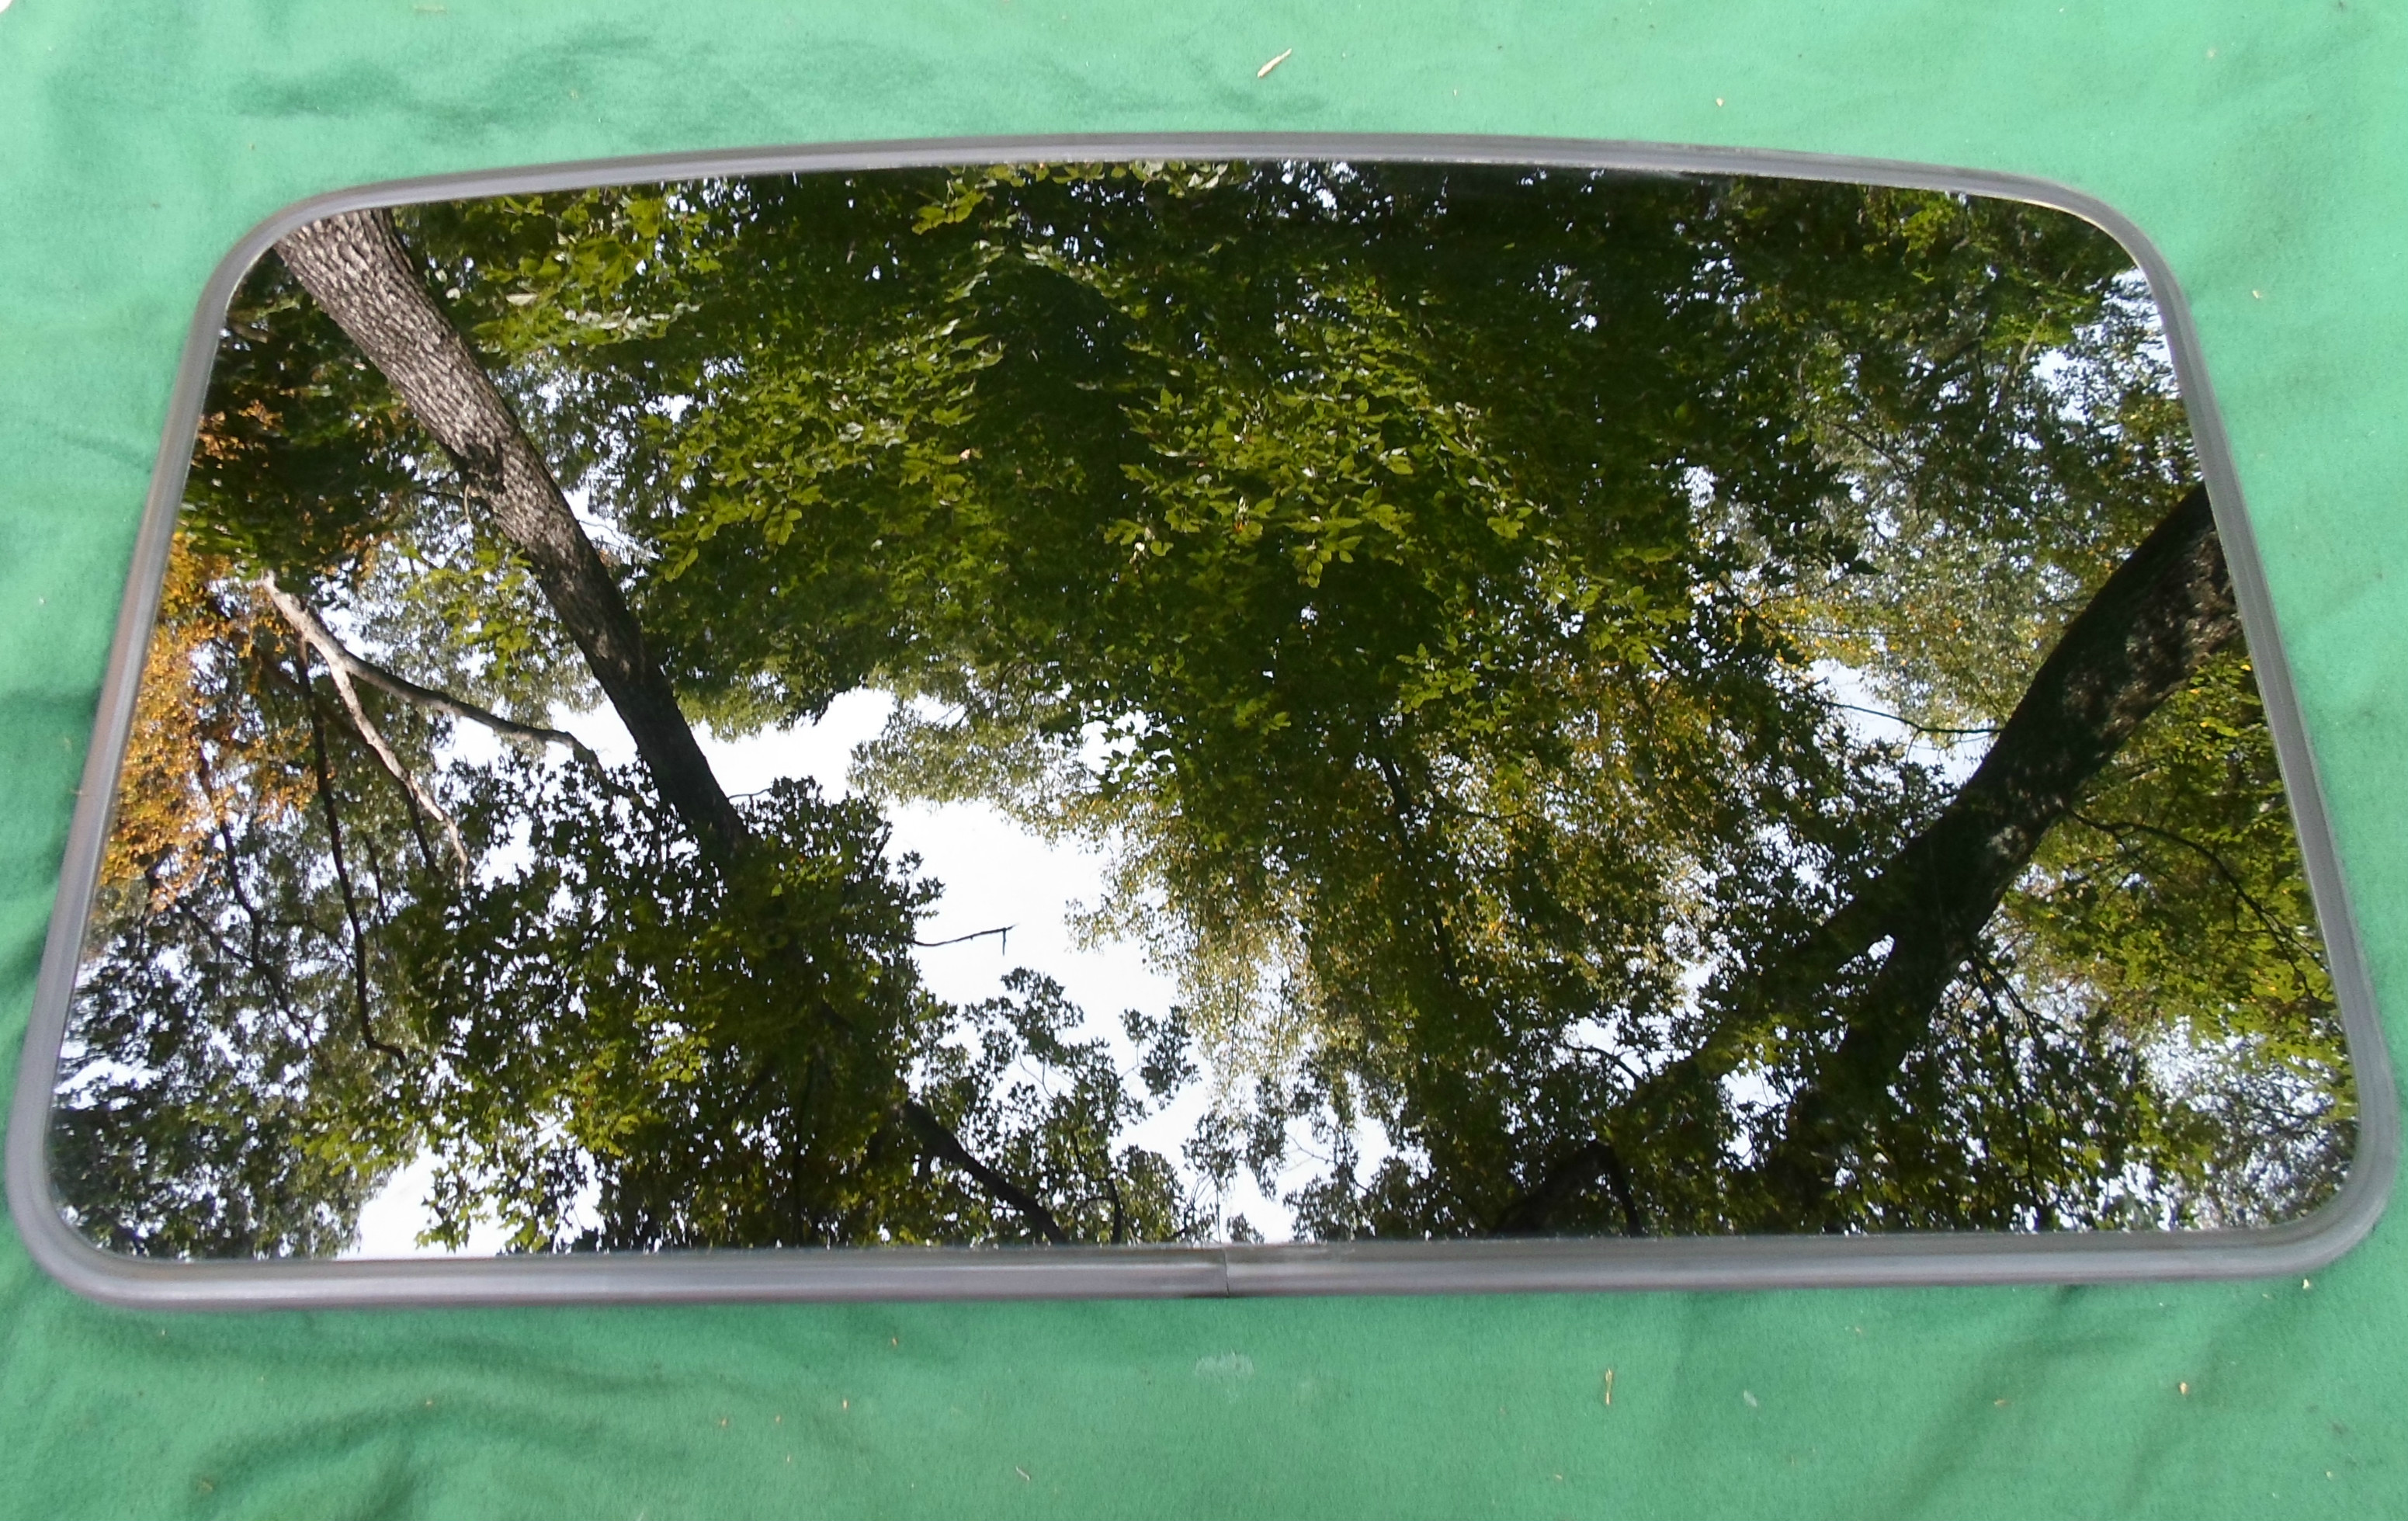 Mazda Sunroof Glass